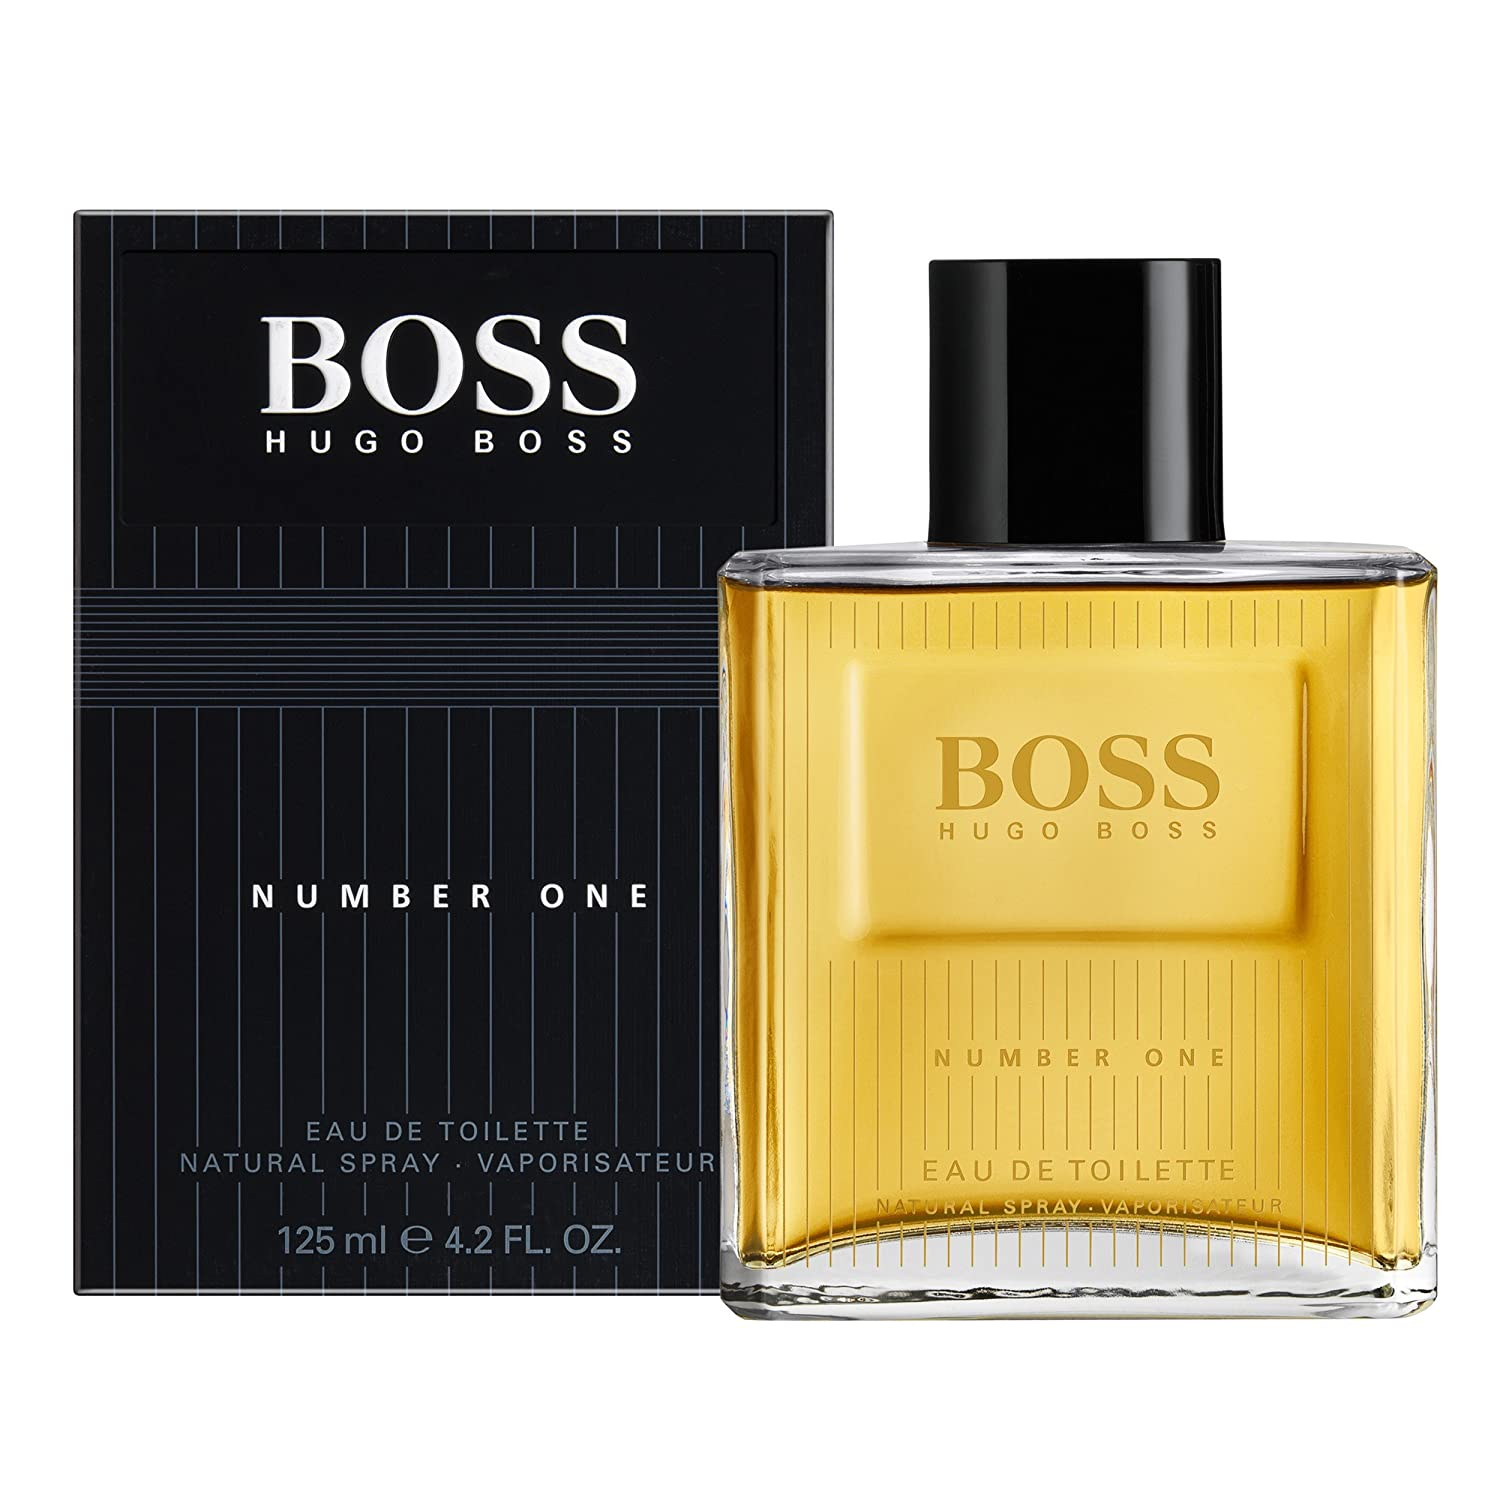 Hugo Boss-Boss Nº 1 Eau de Toilette Vaporizador 50 ml: Hugo Boss: Amazon.es: Belleza